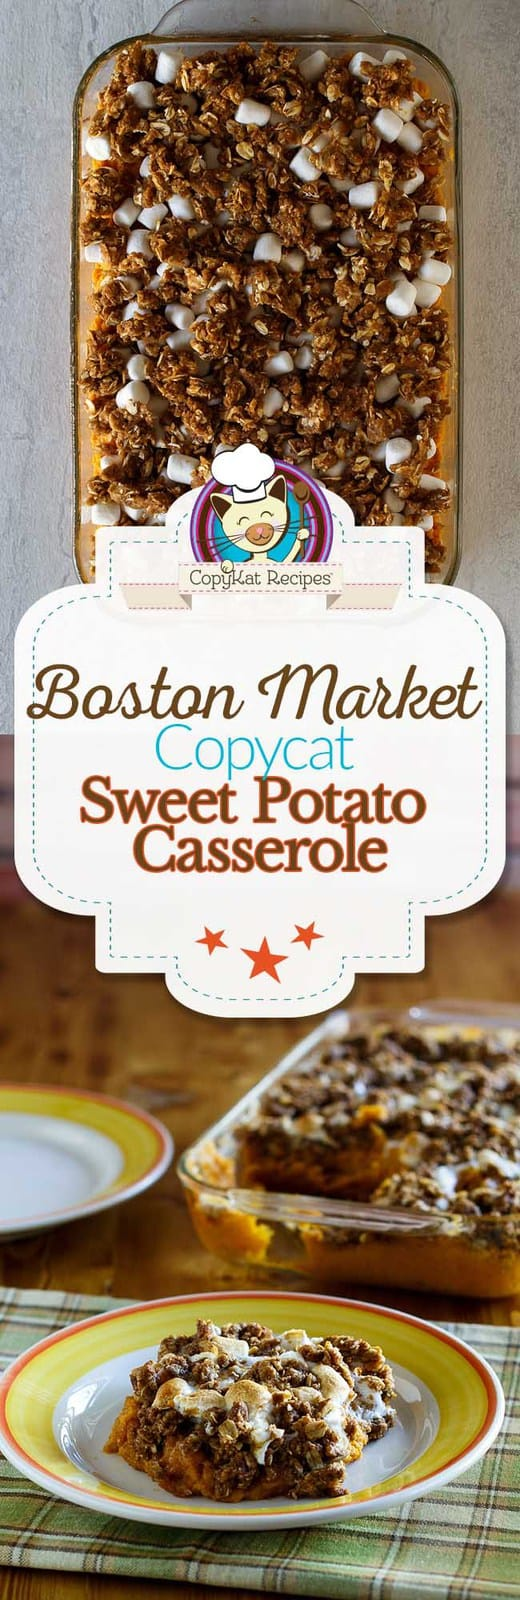 You can recreate Boston Market Sweet Potato Casserole at home with this easy recipe.